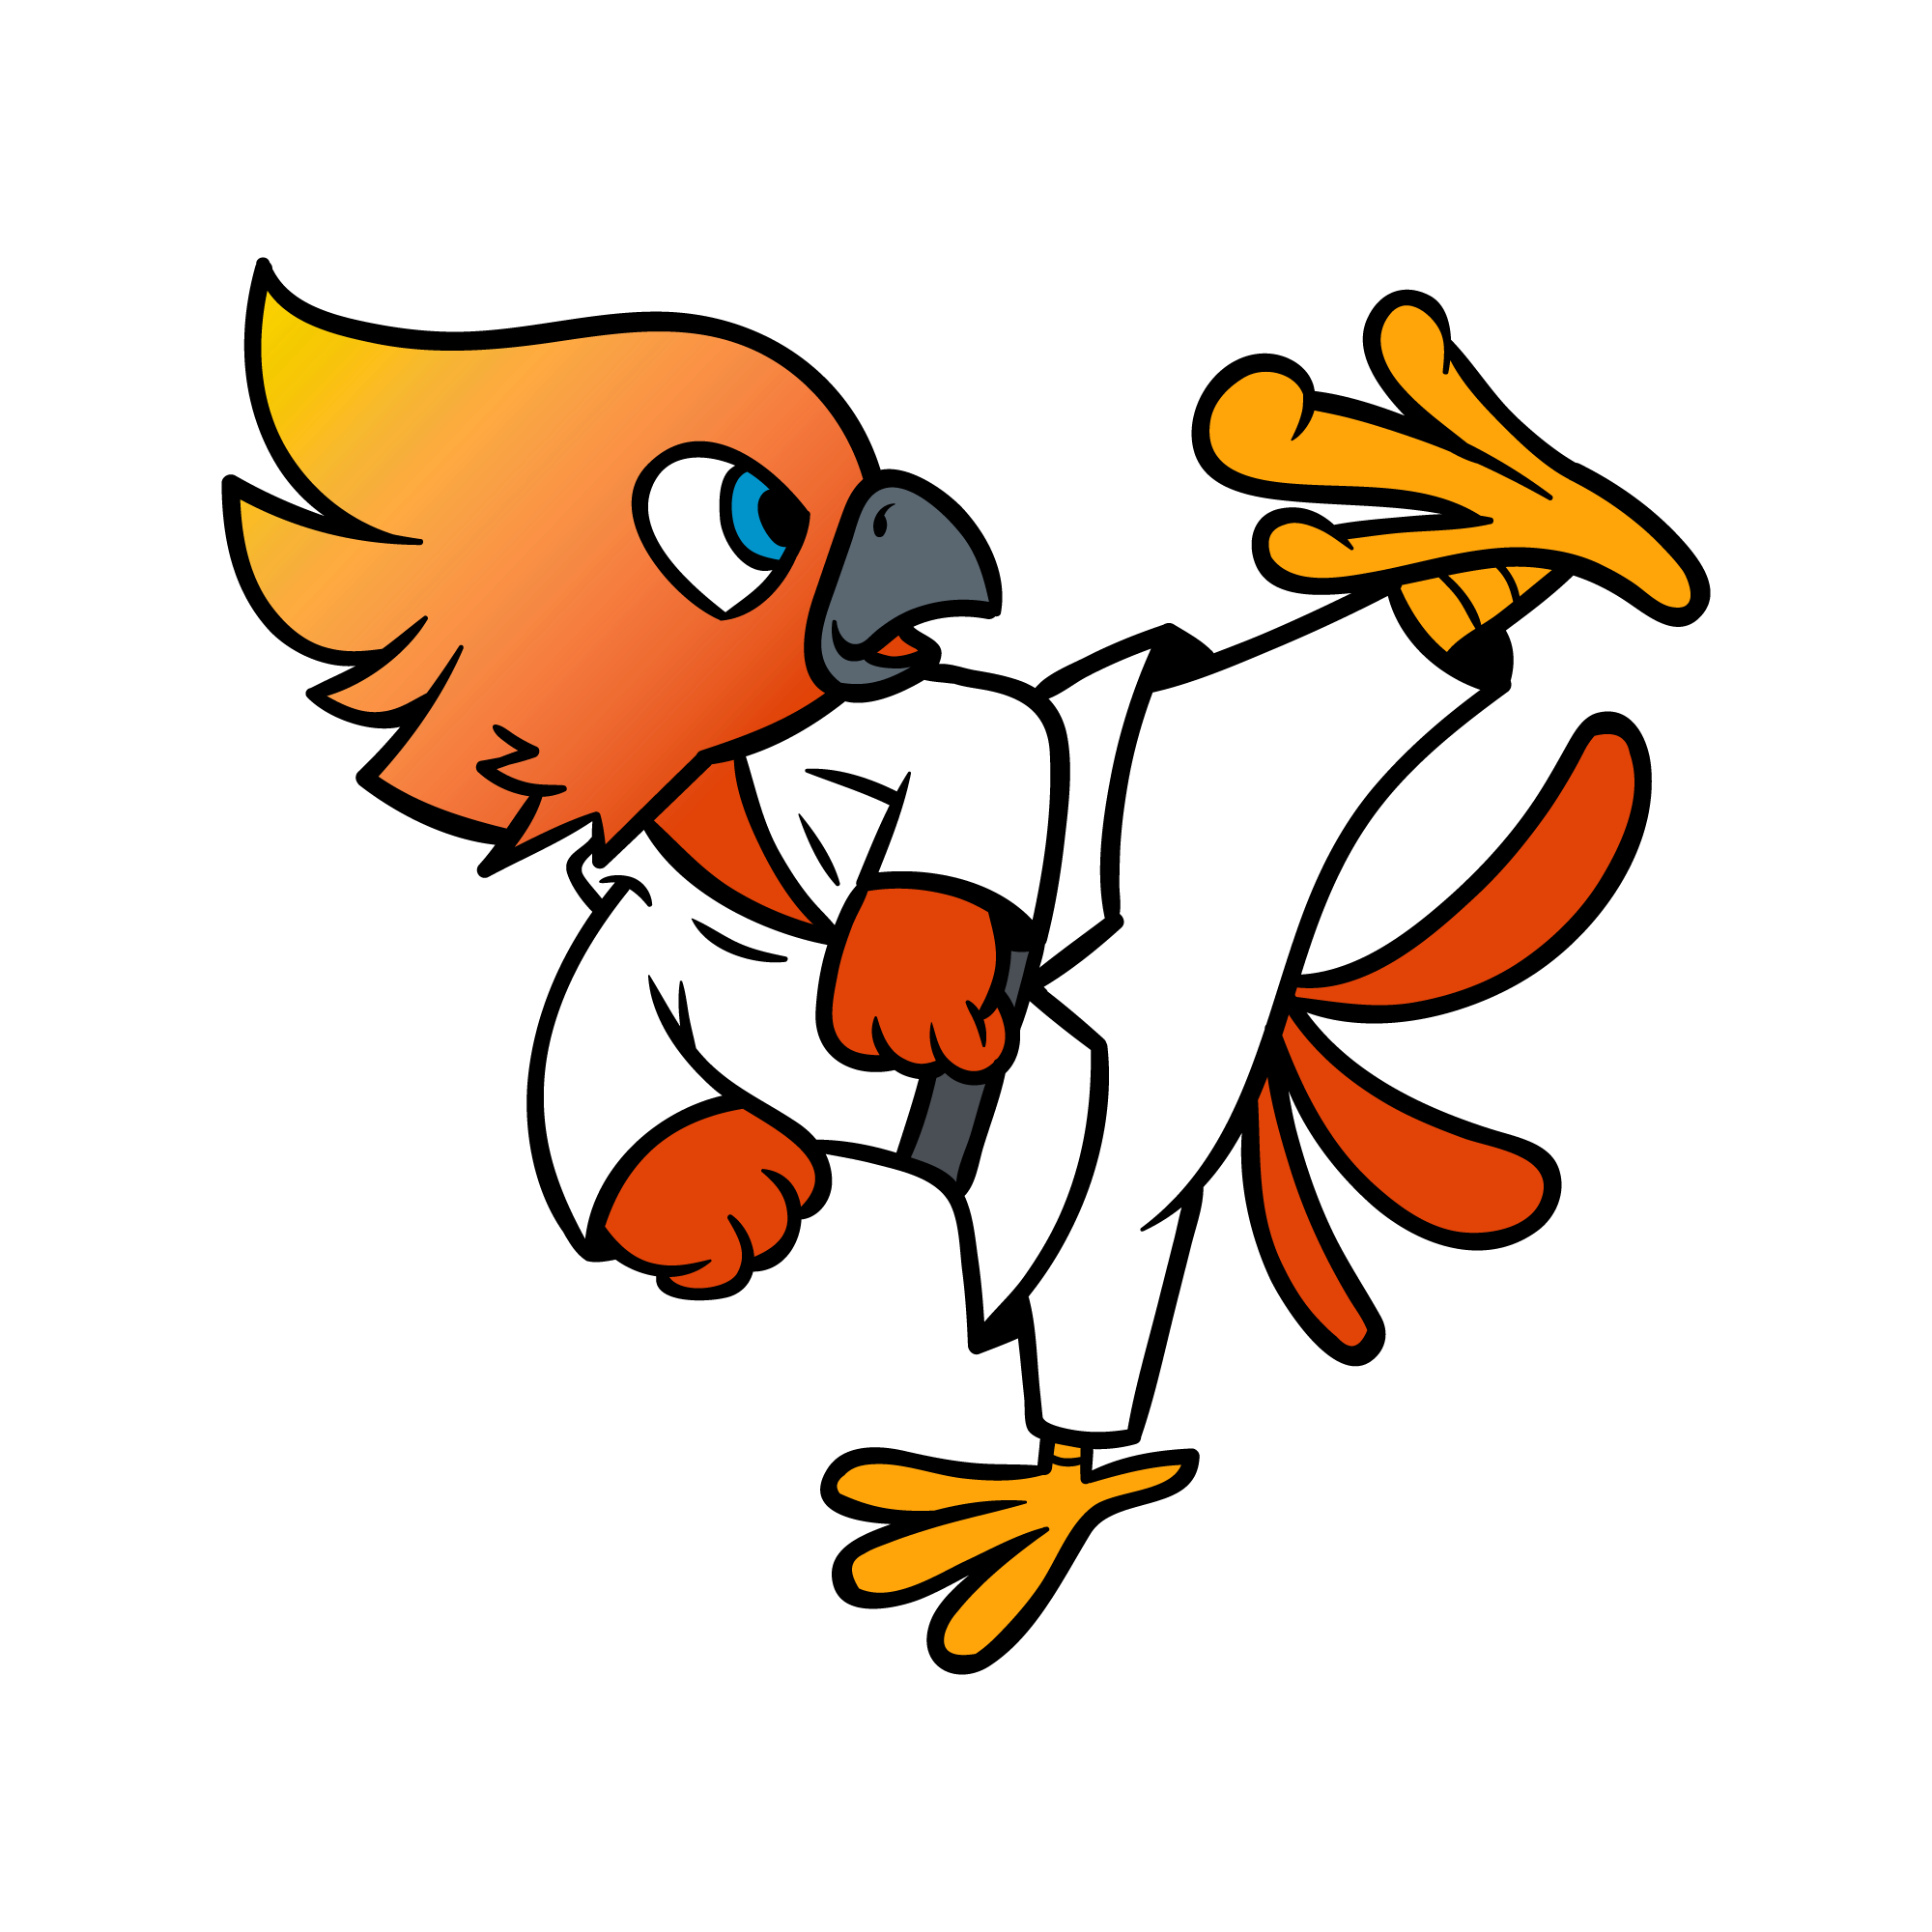 kicking-bird-sparky-the-phoenix